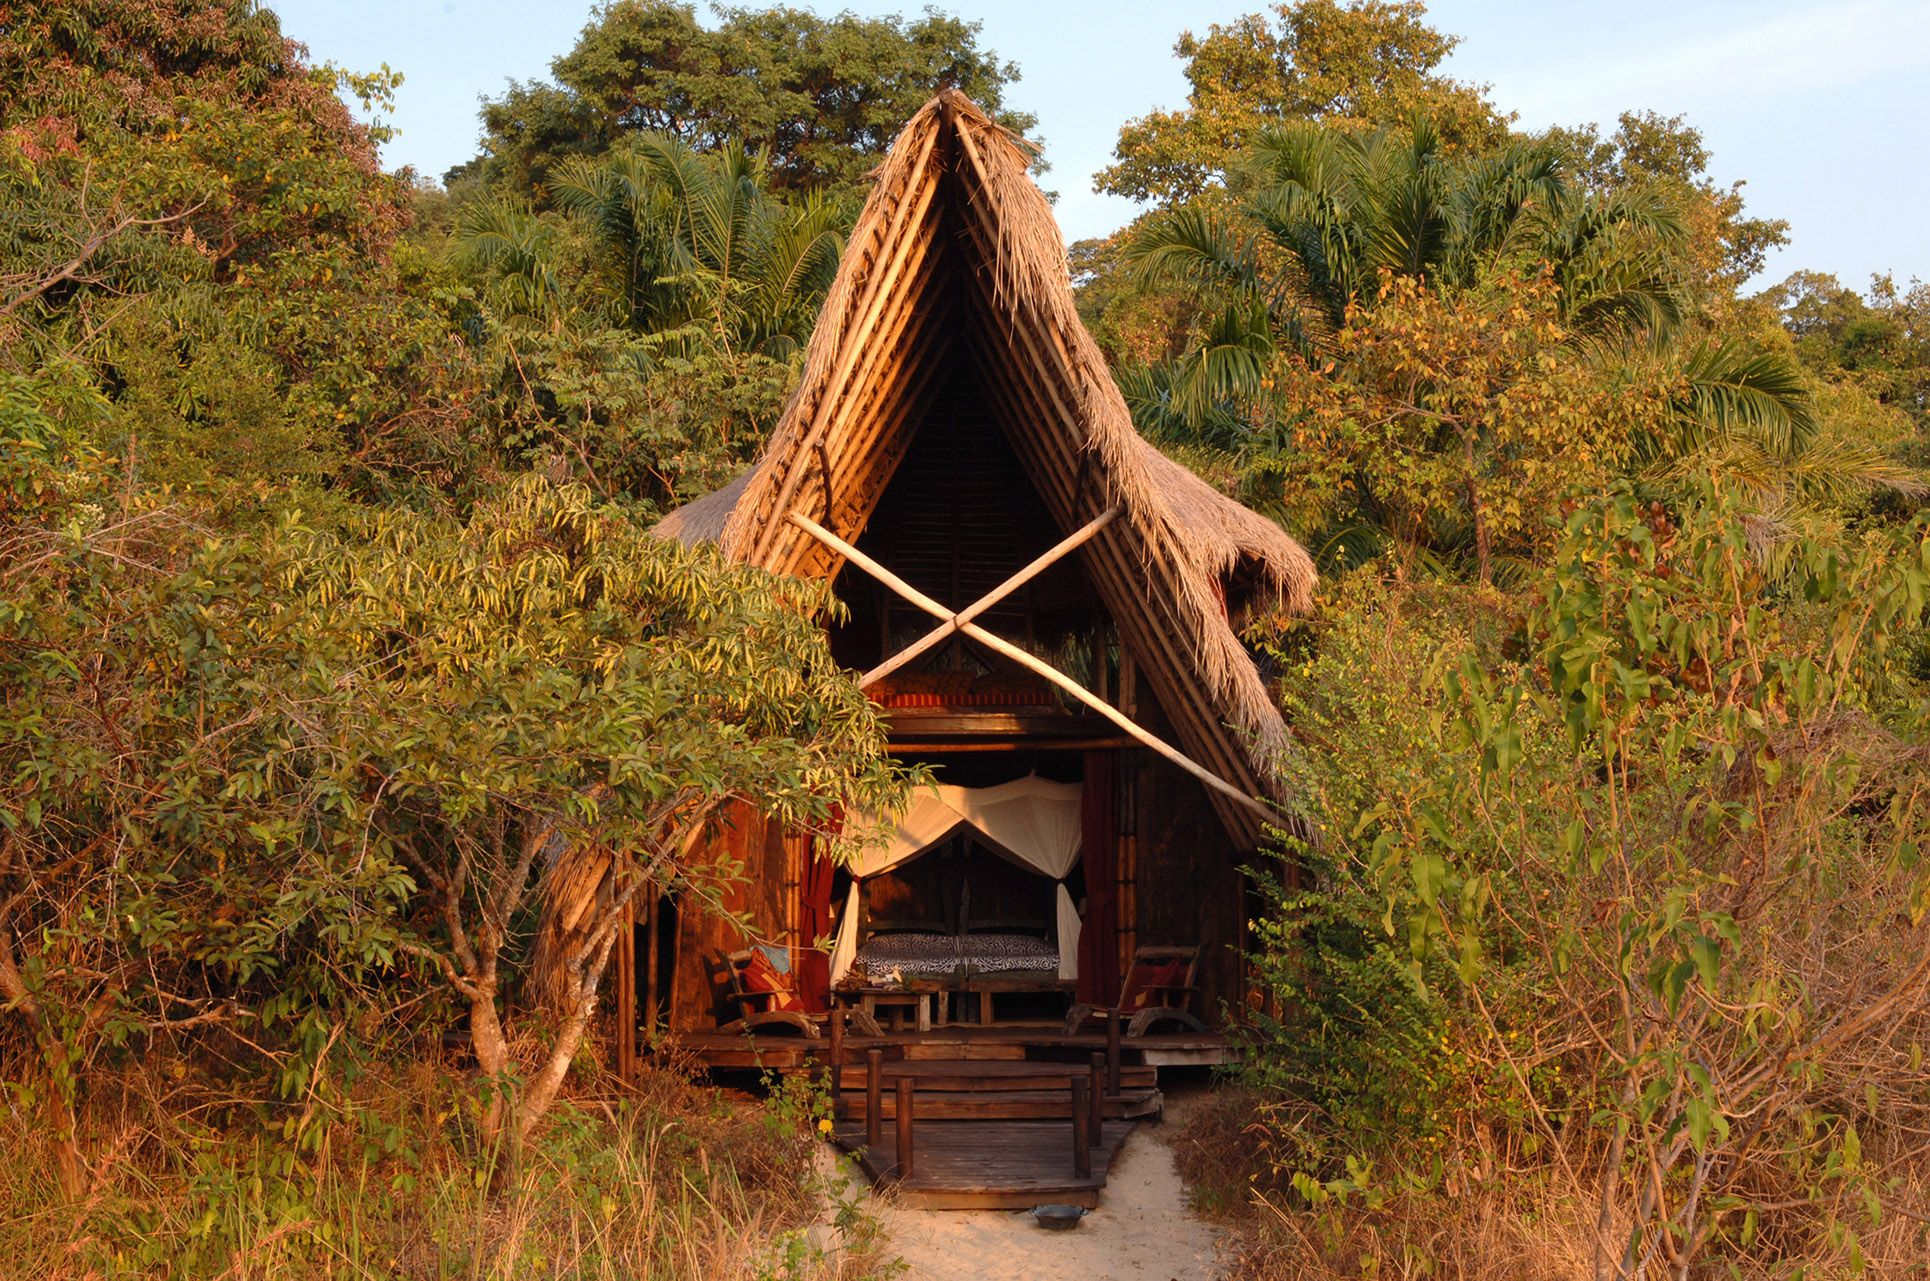 Greystoke Mahale is a remote tented camp in the chimp-inhabited forests of the Mahale Mountains in Tanzania. The camp stands at the base of the densely forested Mahale Mountains National Park on a remote beach and along the shores of Lake Tanganyika.